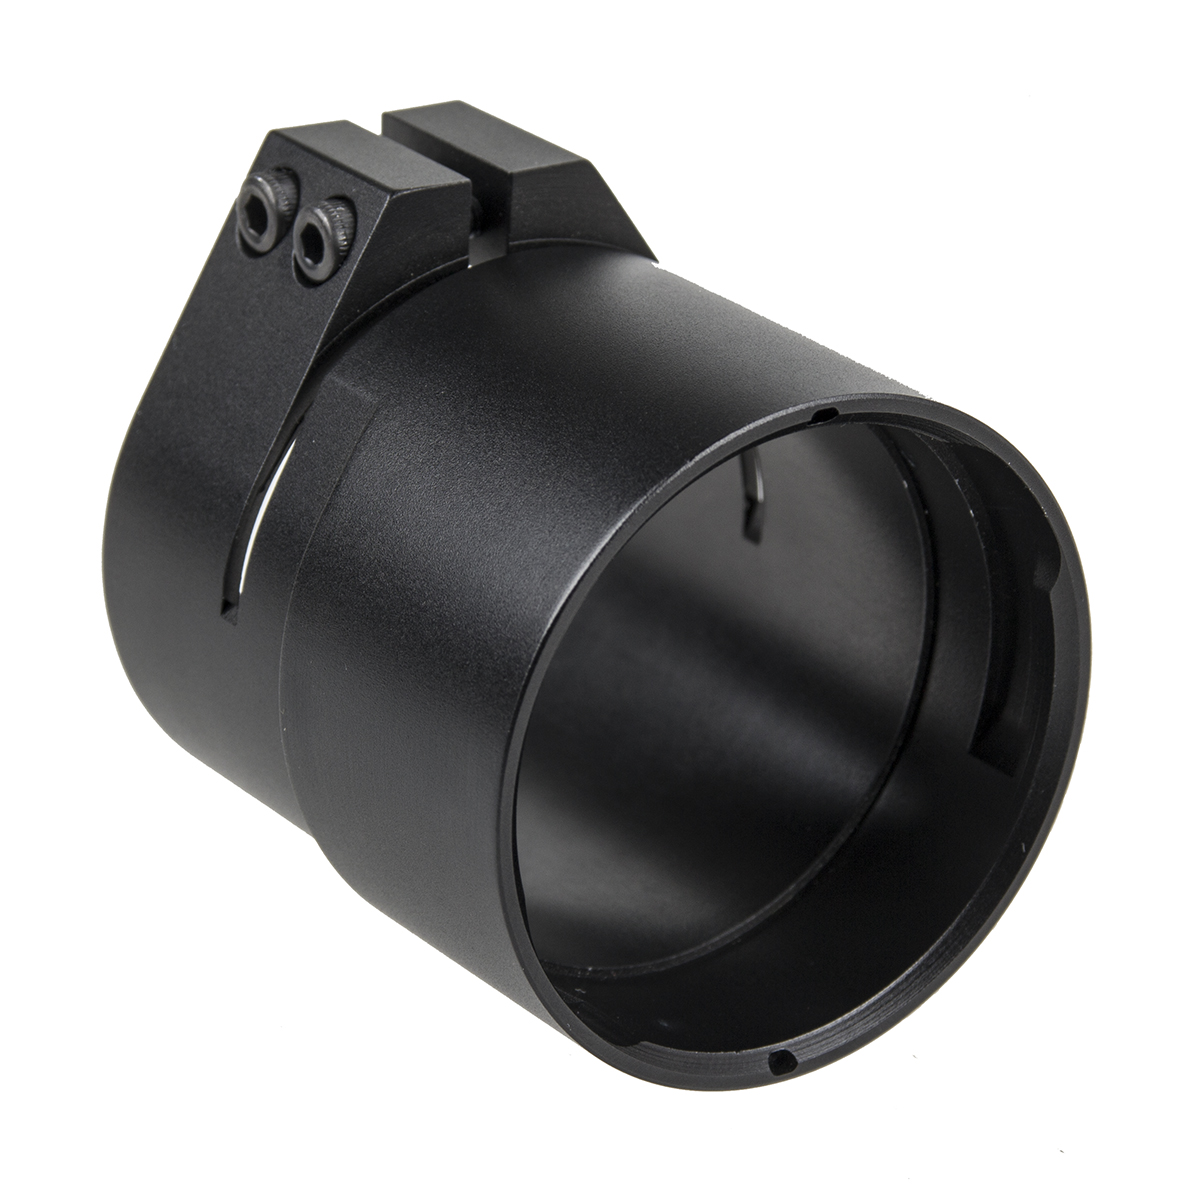 Image of Pard NV007 Adapter 42mm